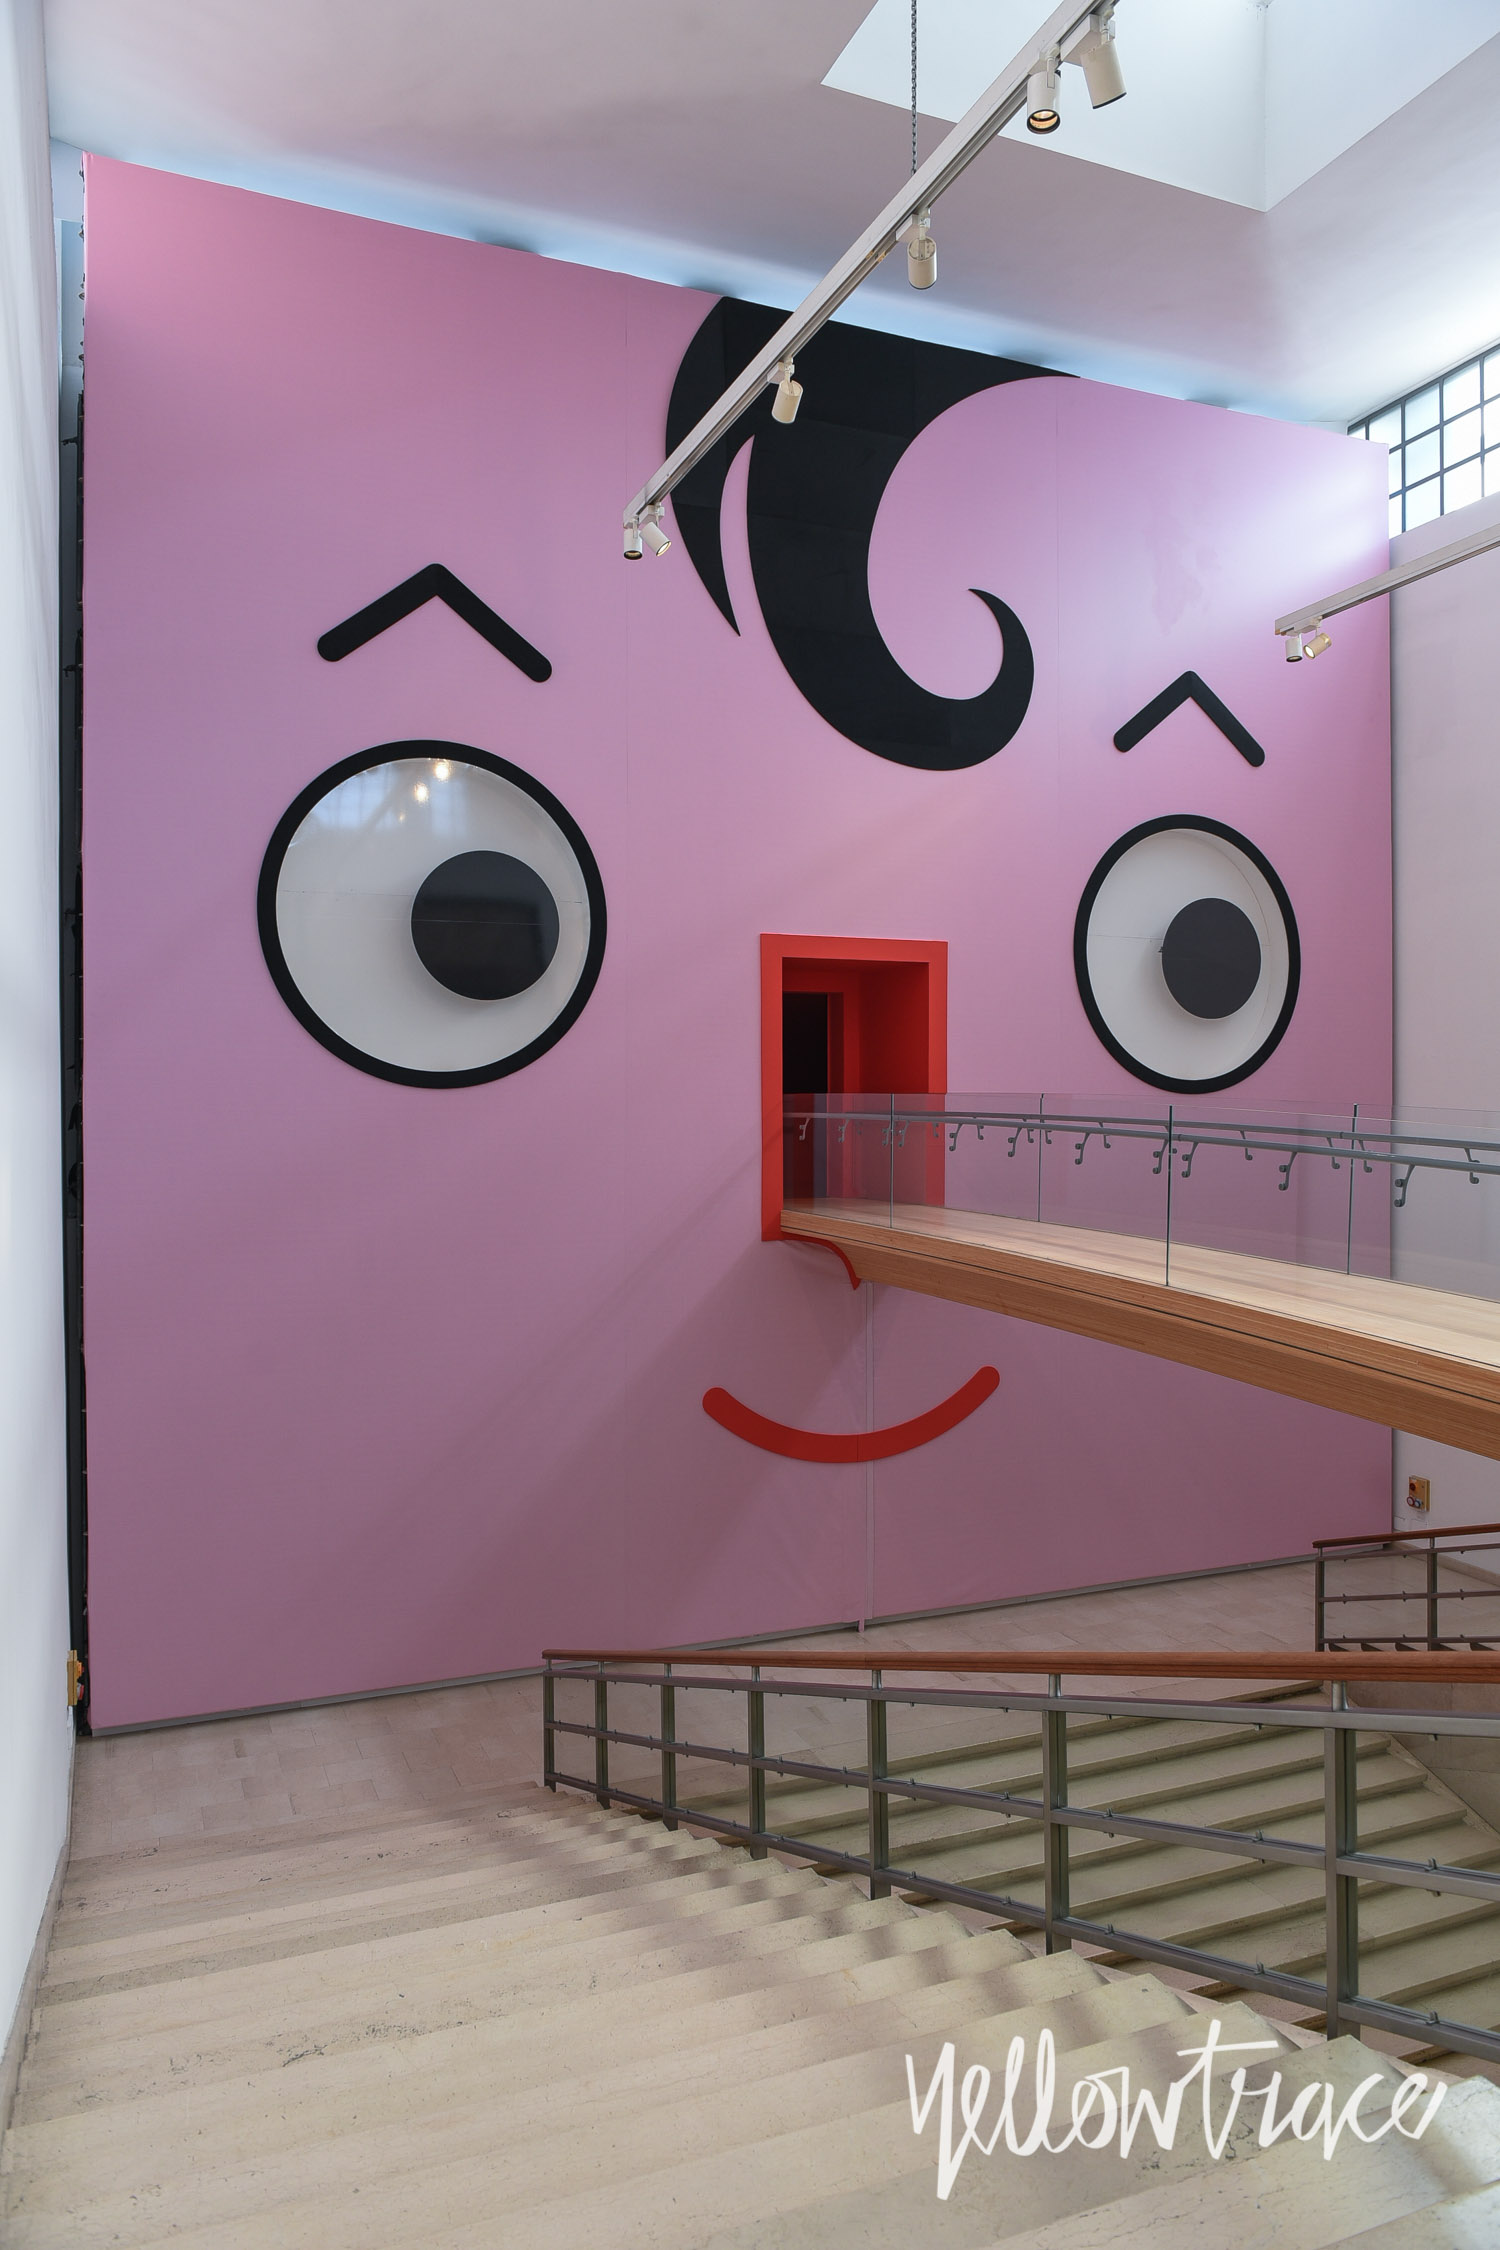 Milan Design Week 2017 Highlights, Giant Pinocchio at Triennale Design Museum for Giro Giro Tondo - Design for Children Exhibition, Photo © Nick Hughes | #Milantrace2017